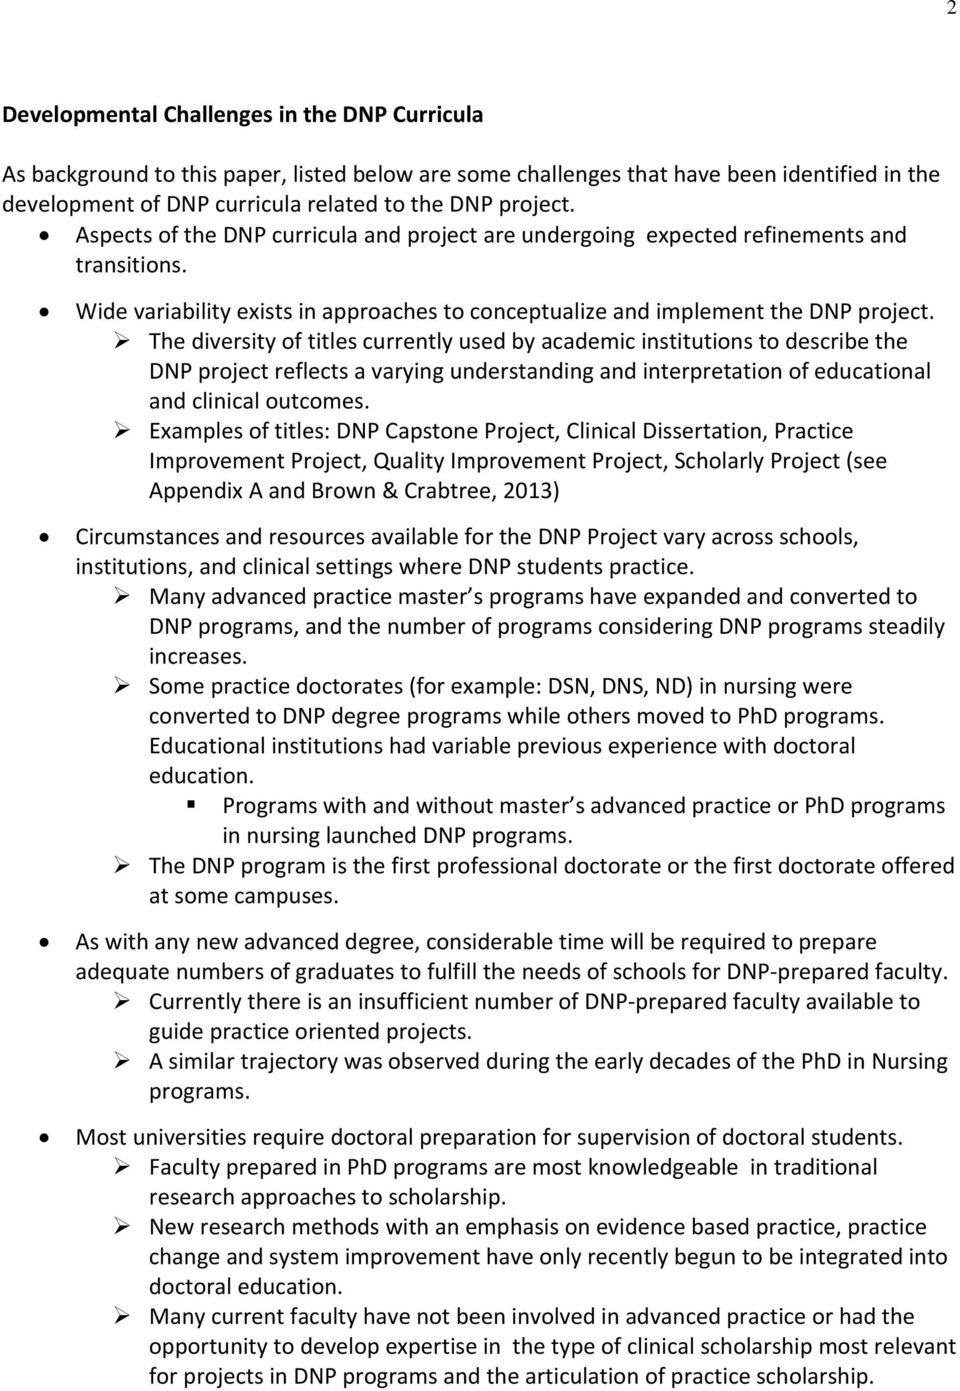 The diversity of titles currently used by academic institutions to describe the DNP project reflects a varying understanding and interpretation of educational and clinical outcomes.